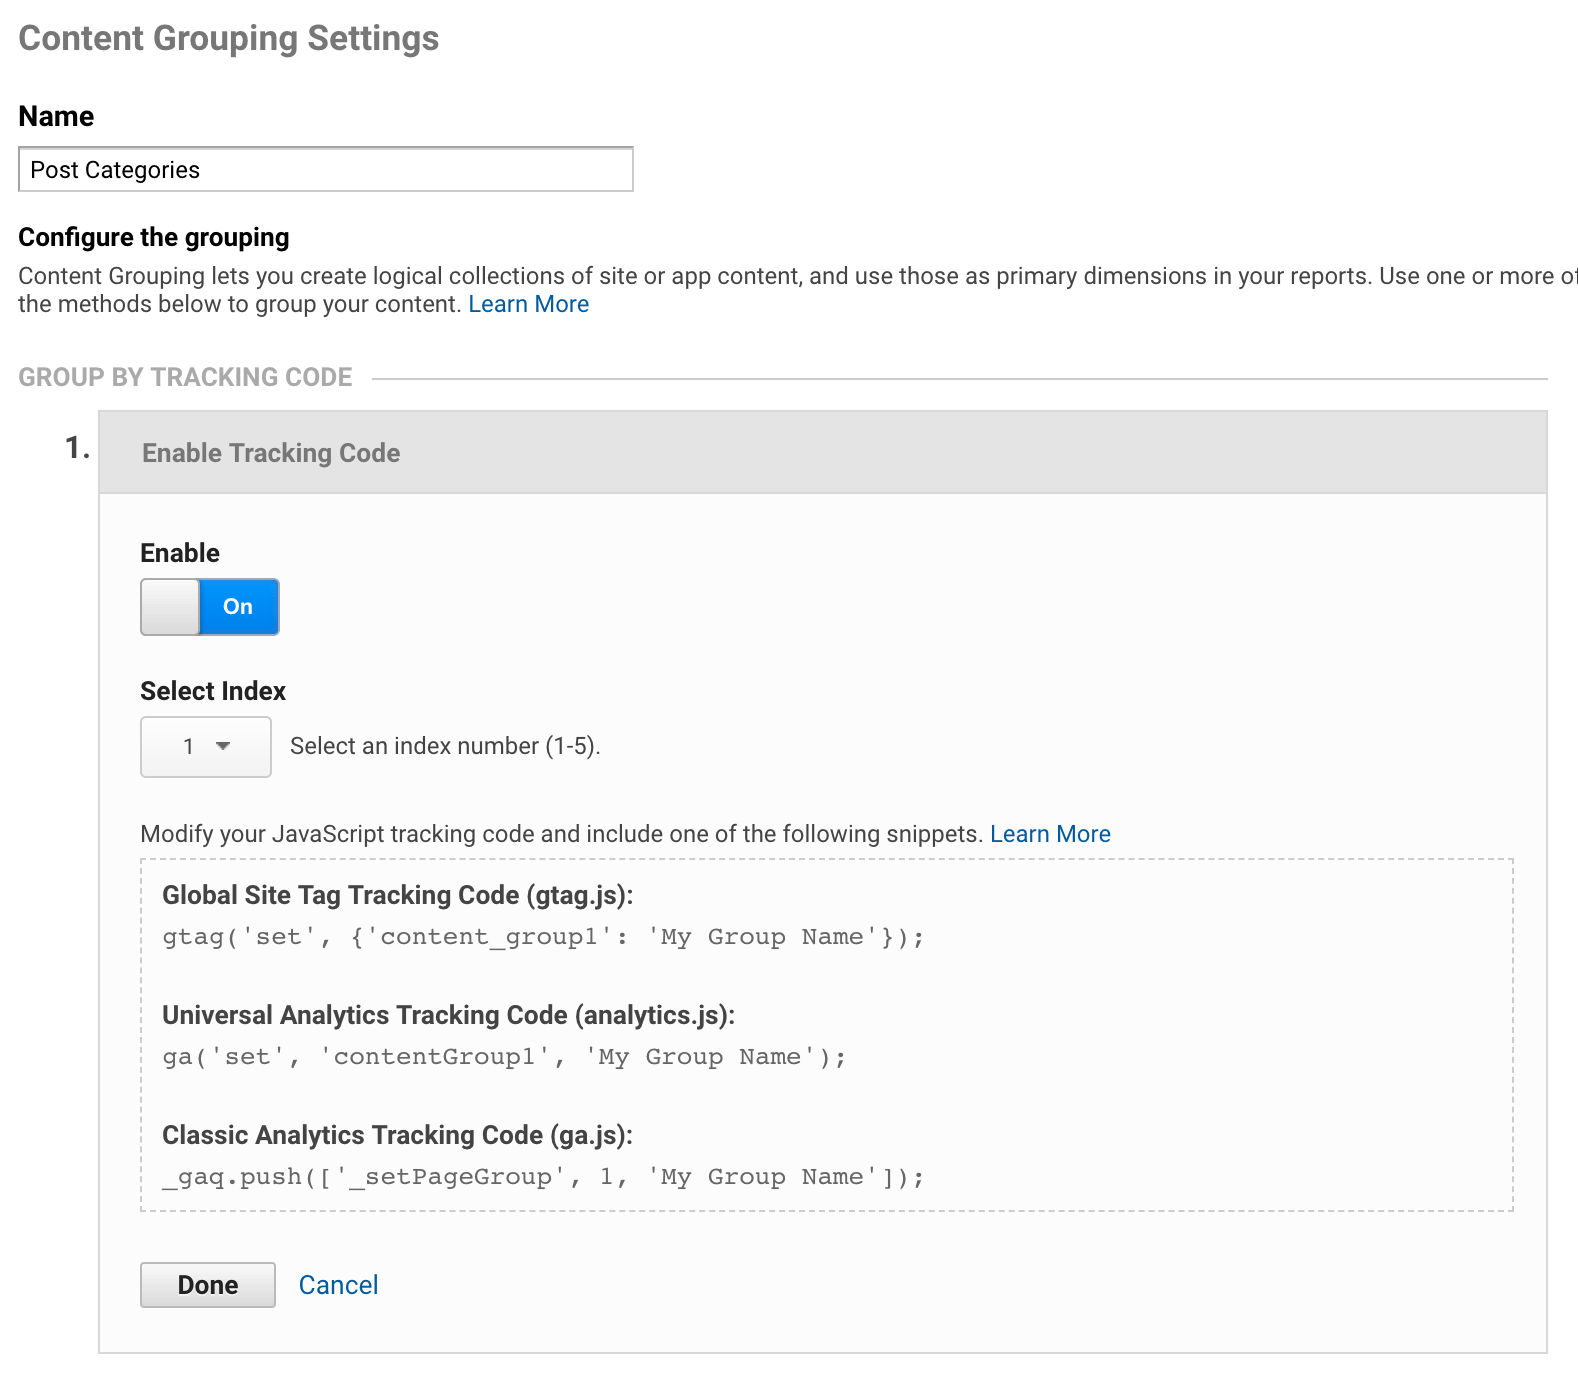 How to Create a new Content Group in Google Analytics